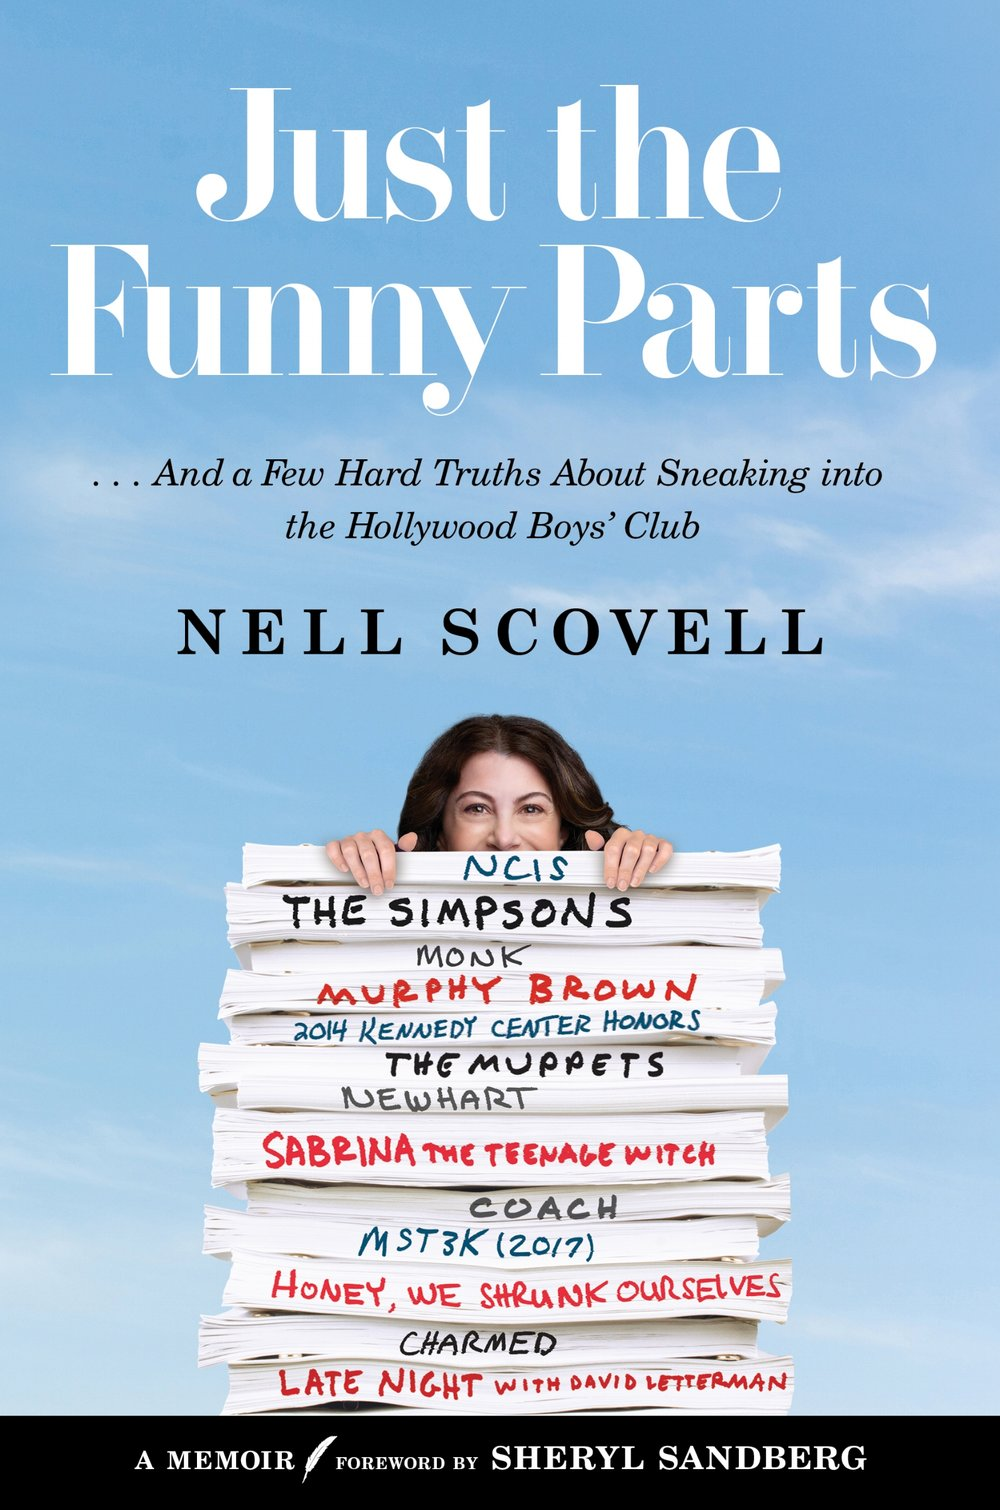 JUST THE FUNNY PARTS - Jacket Image.jpg